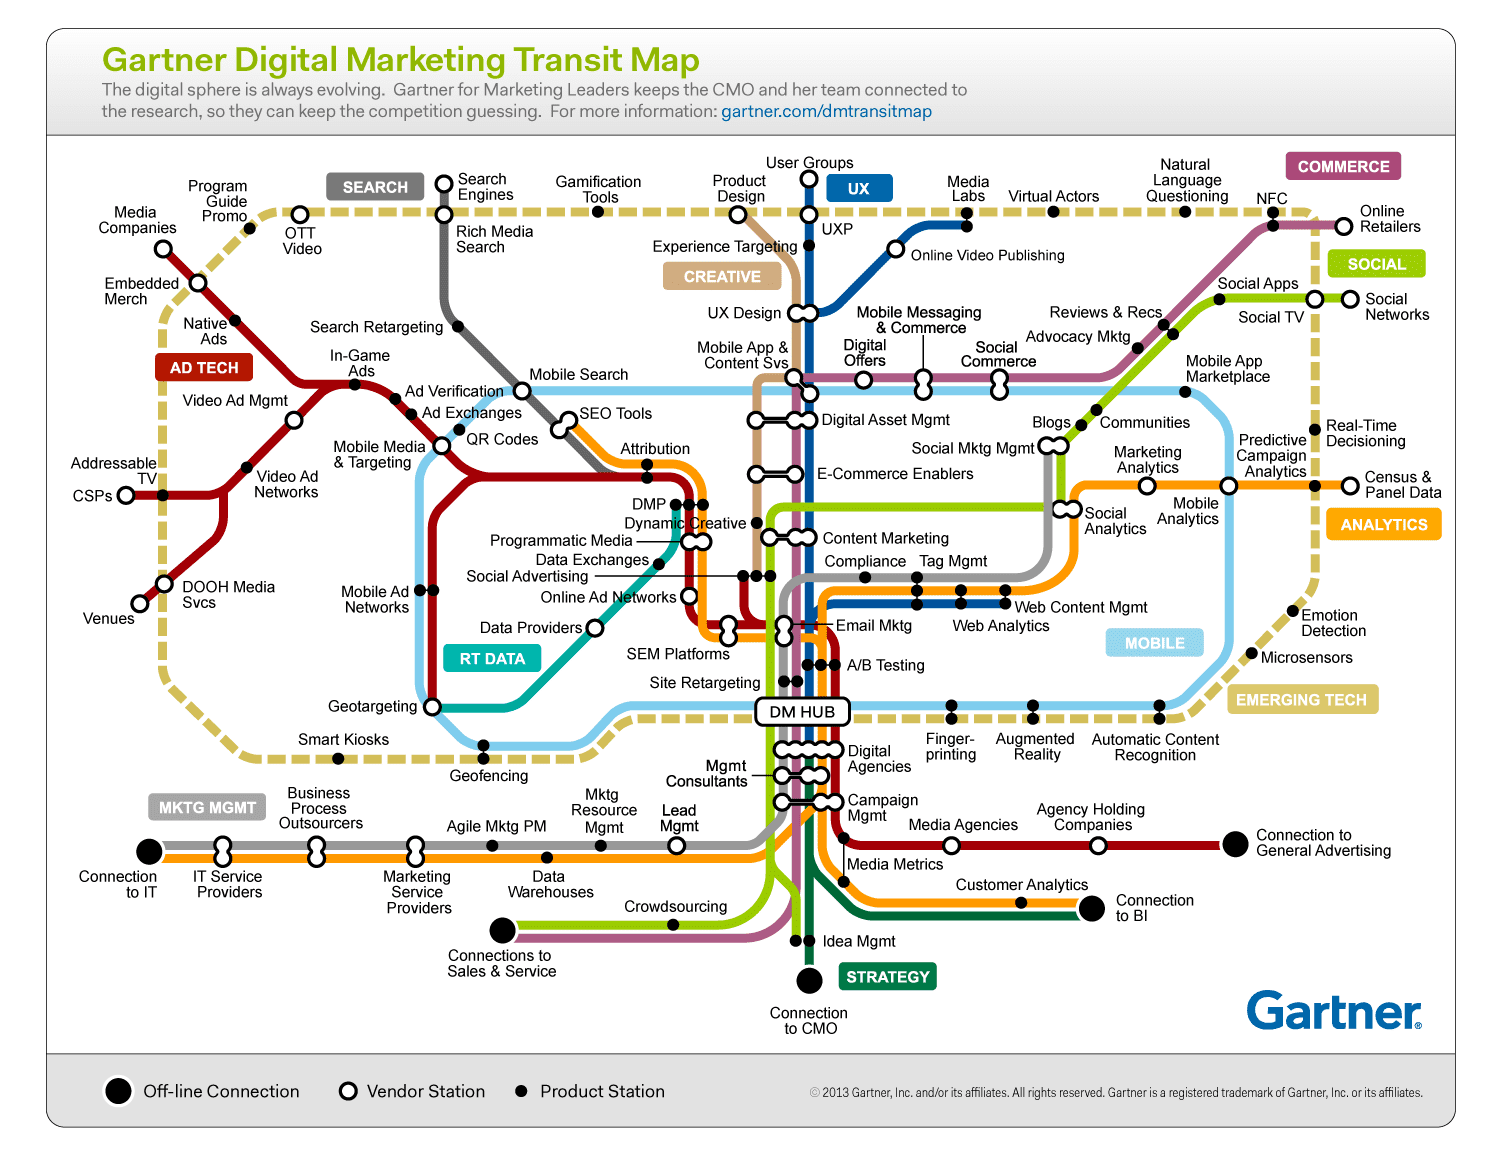 A New Digital Marketing Map Smart Insights